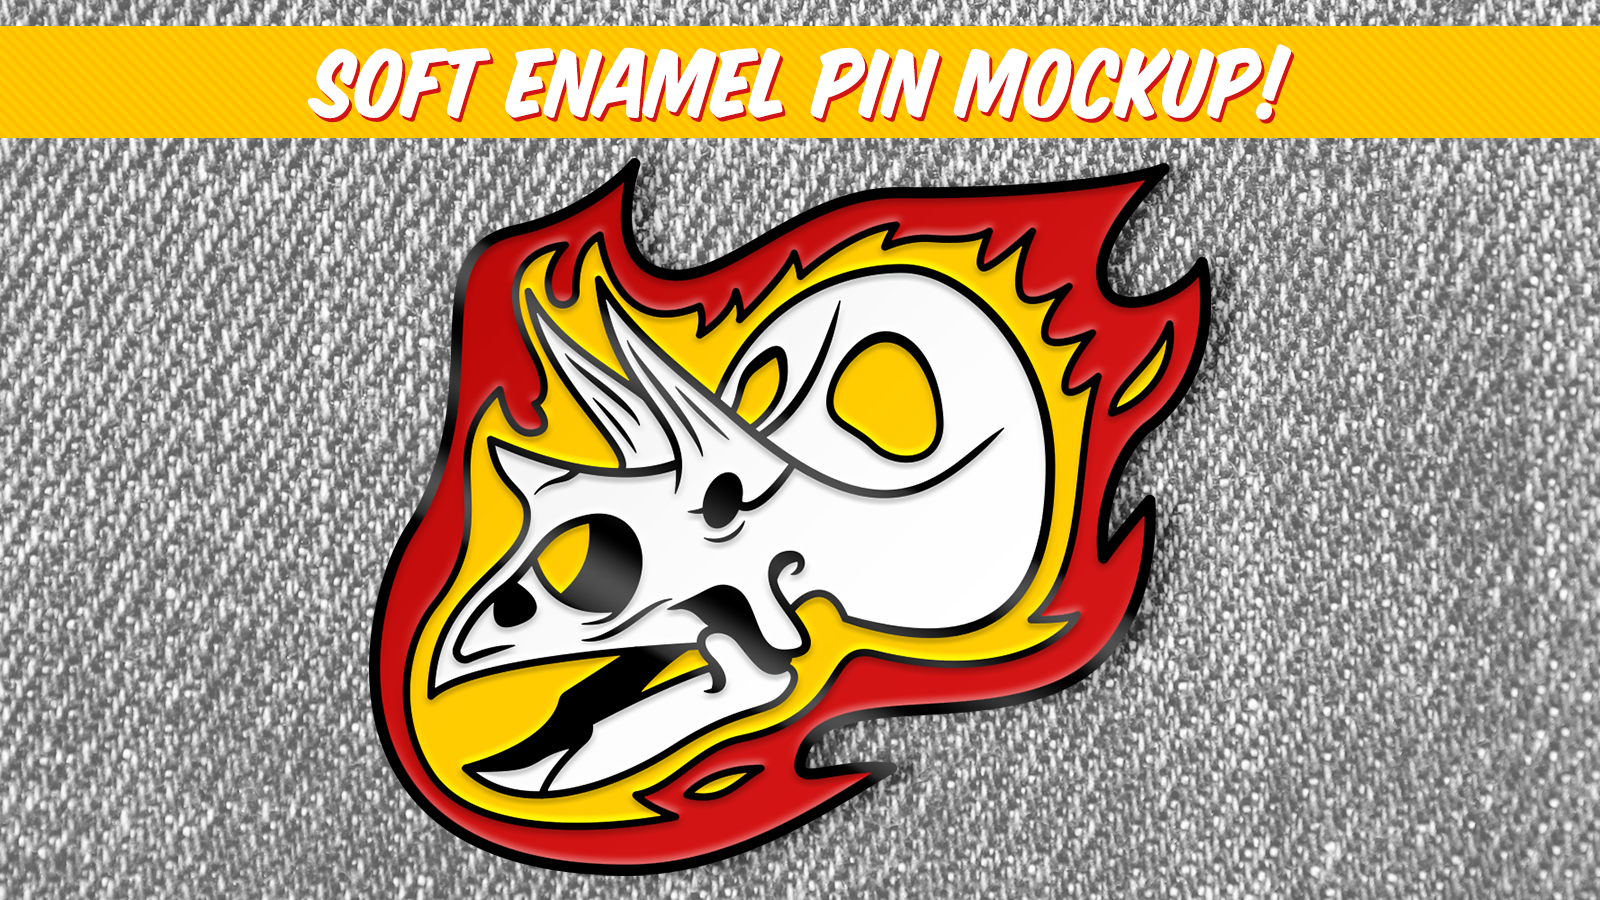 Mockup of a soft enamel pin, showing recessed areas of flat color